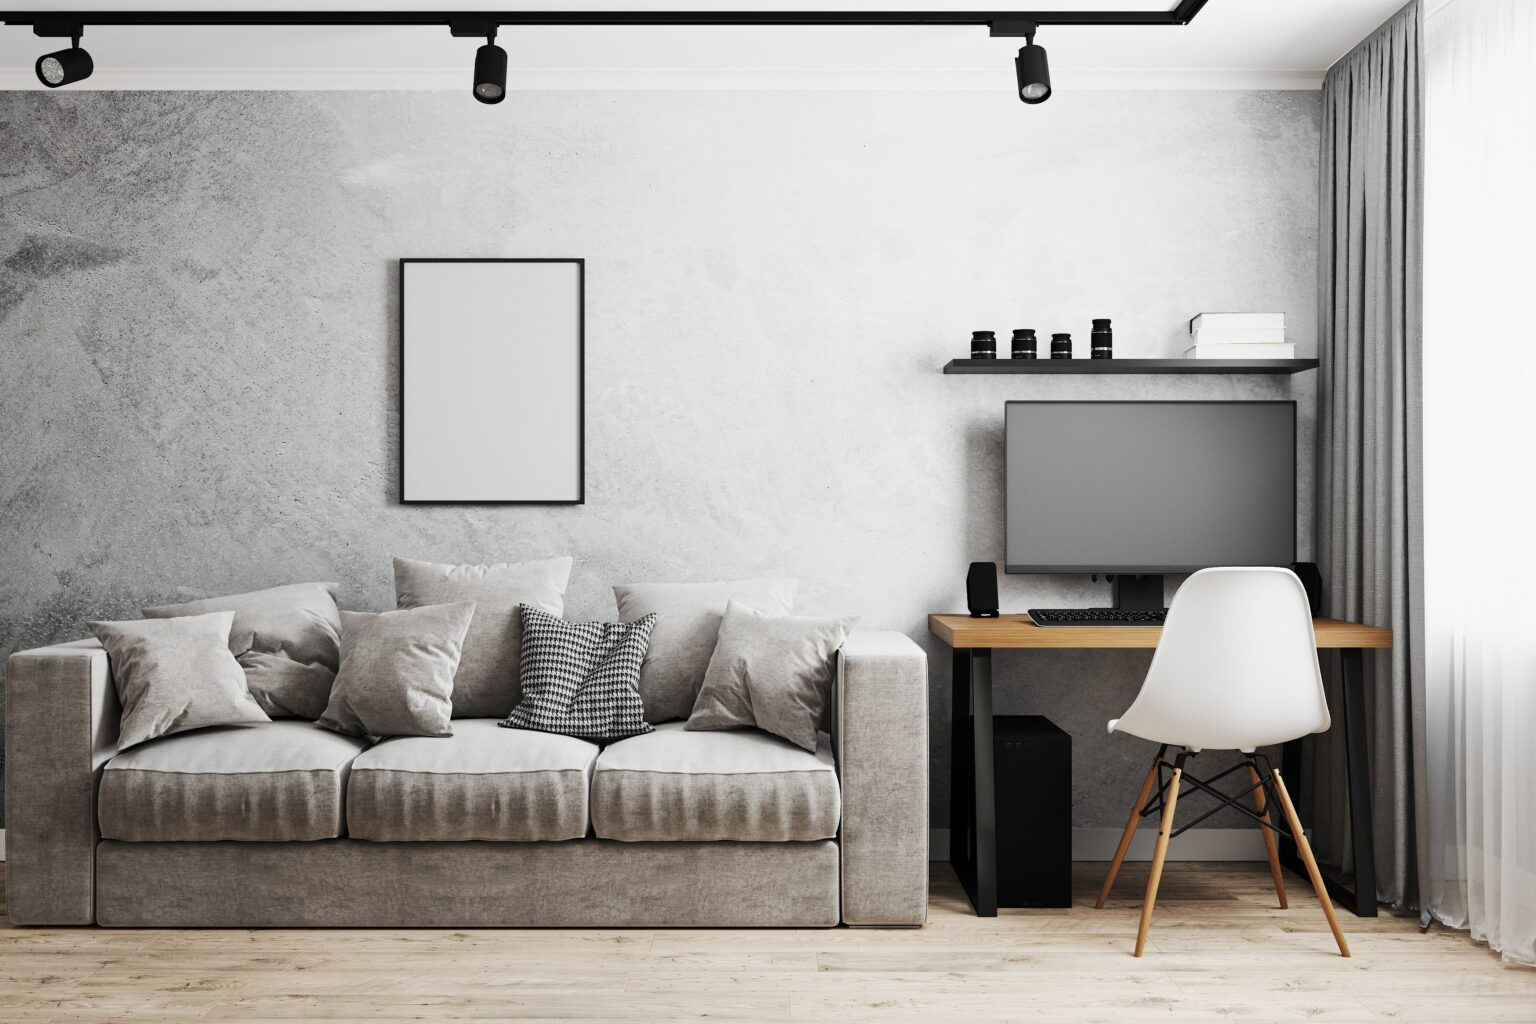 blank-frame-in-modern-interior-with-gray-concrete--AWGBCKE-min